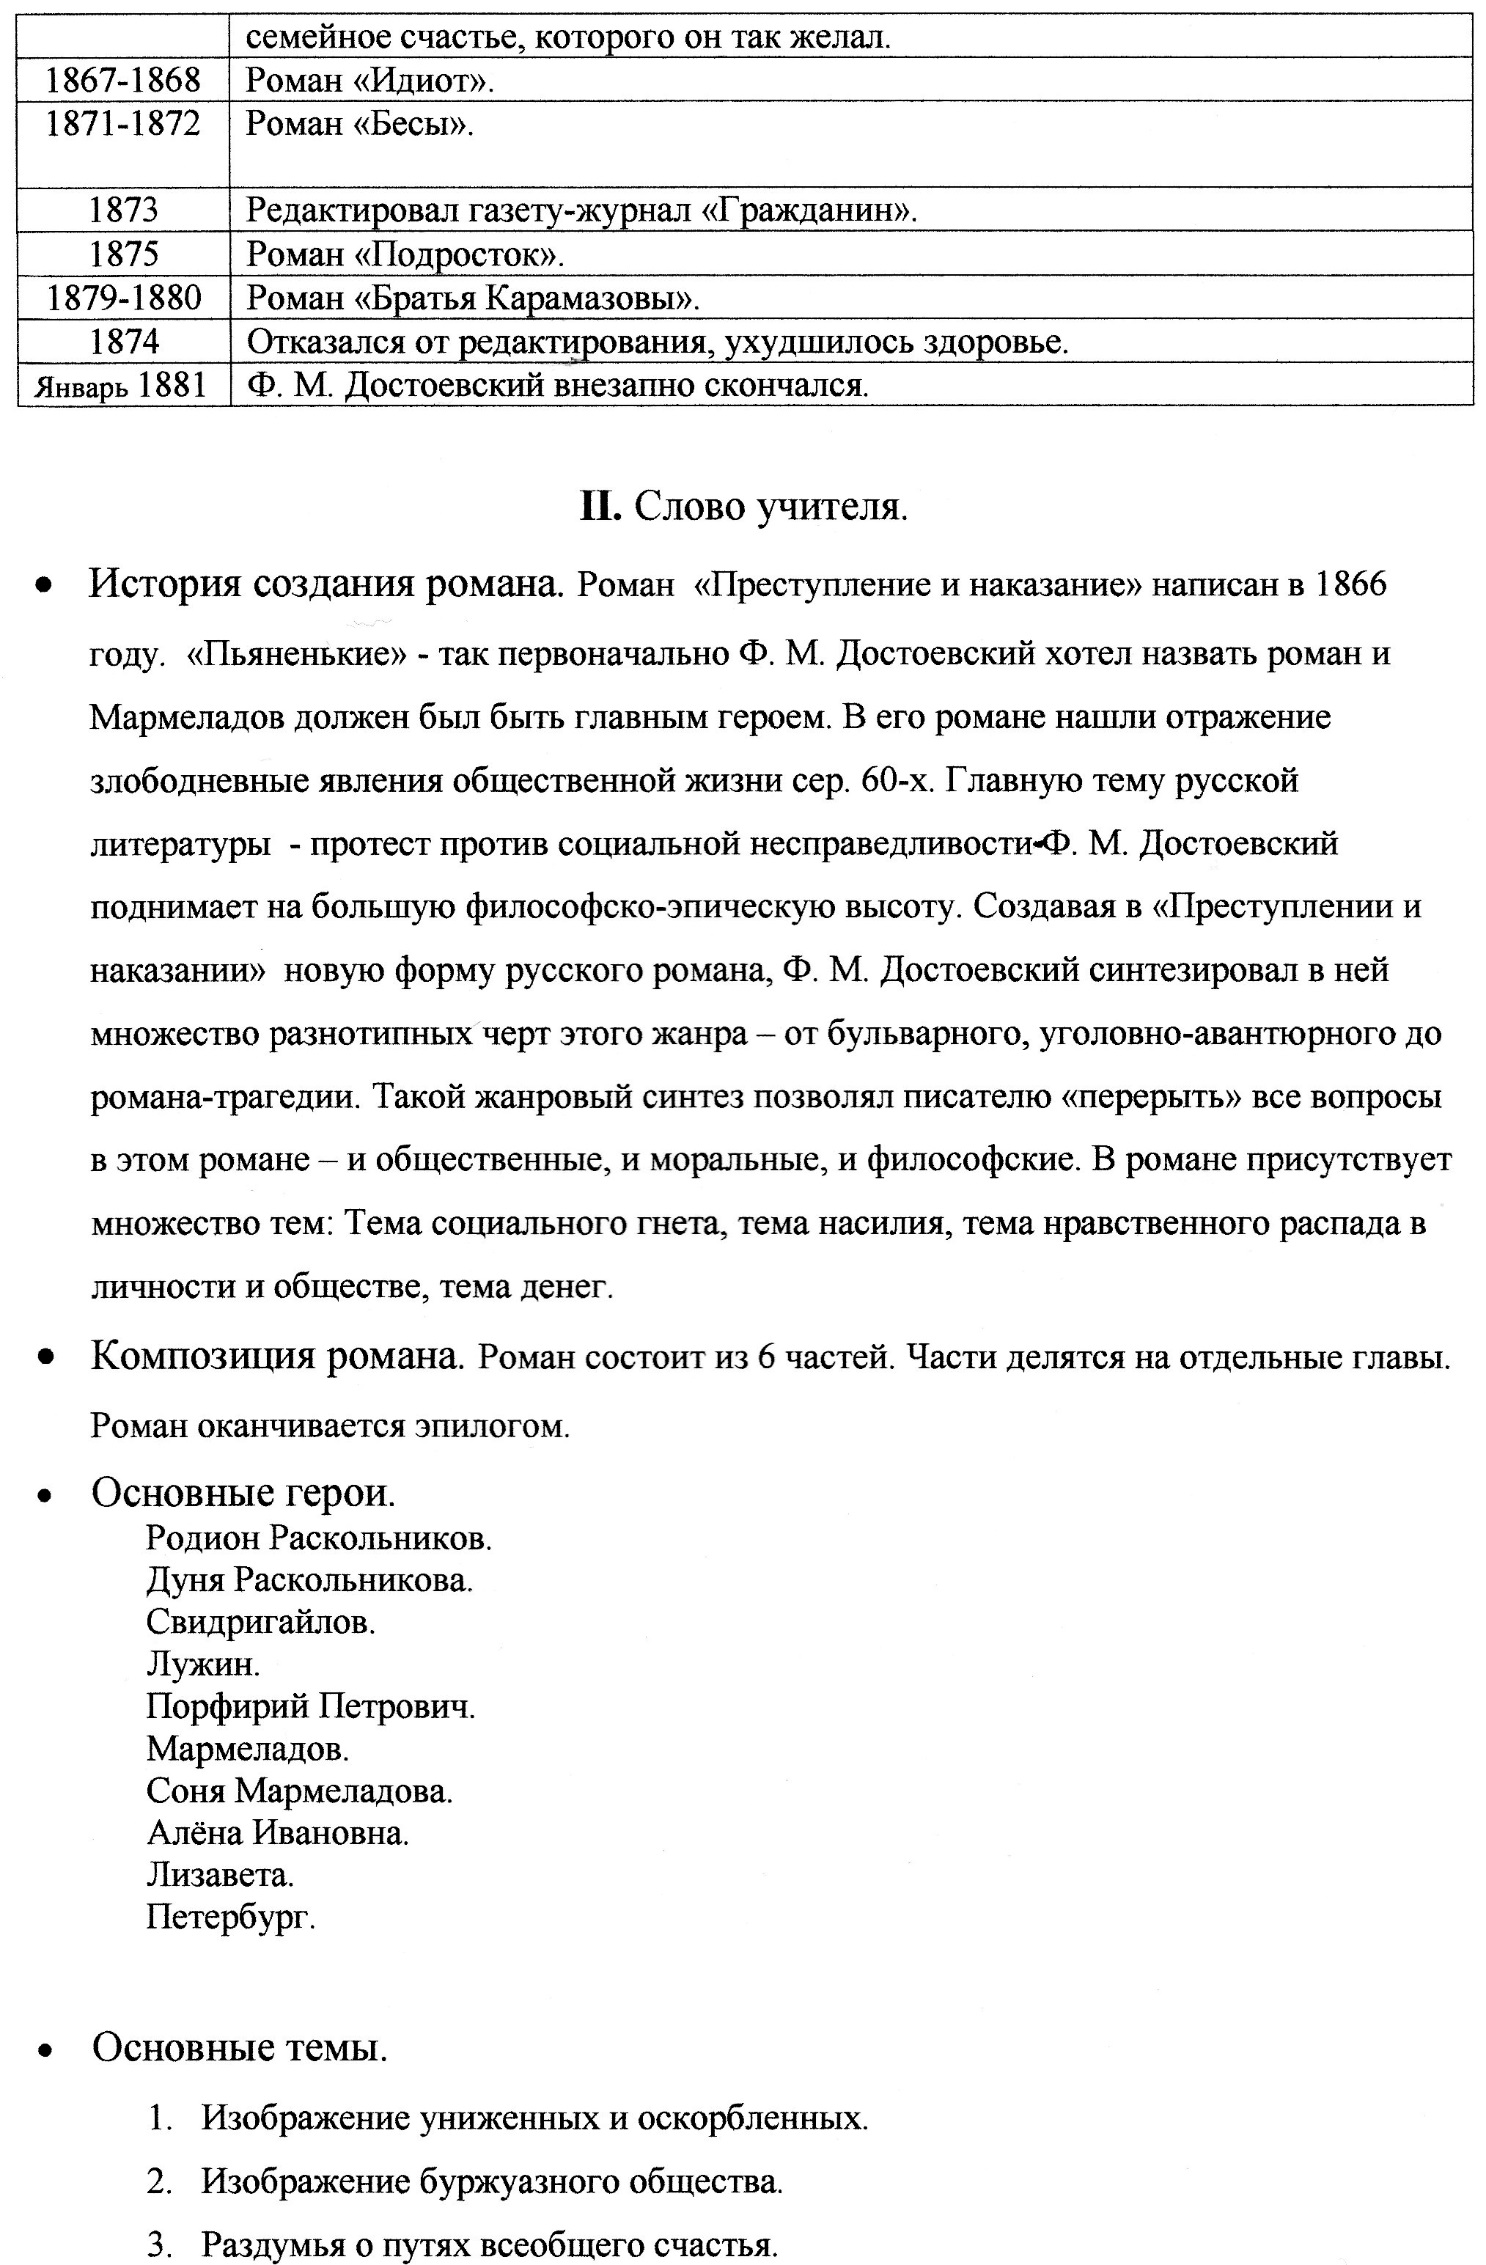 C:\Users\дом\Pictures\img011.jpg